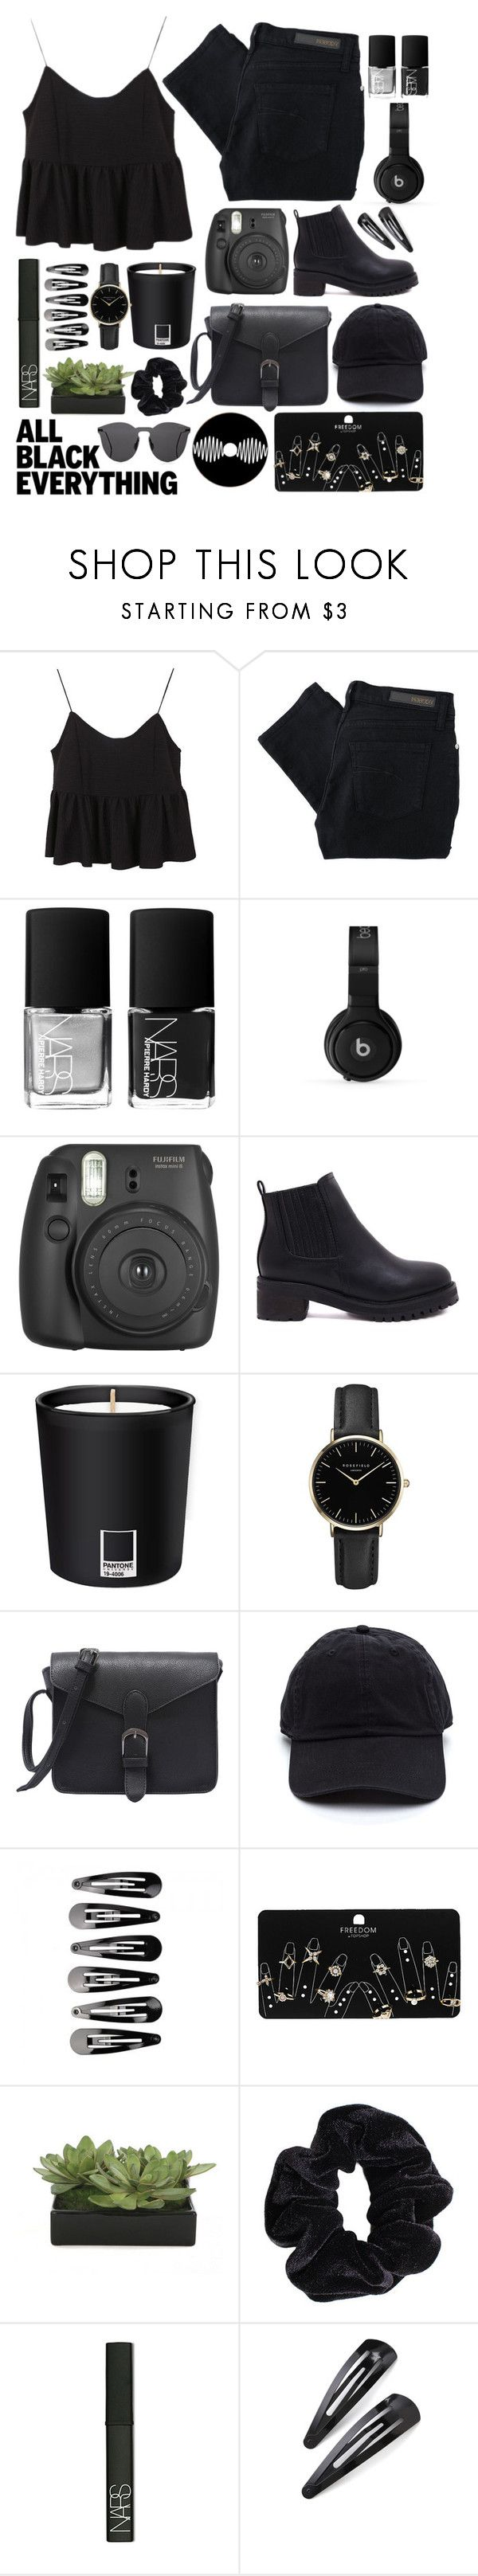 """""""Monochrome: All Black Everything"""" by voidelle ❤ liked on Polyvore featuring Nobody Denim, NARS Cosmetics, Beats by Dr. Dre, Fujifilm, Pantone, ROSEFIELD, Topshop, Lux-Art Silks, American Apparel and Adia Kibur"""